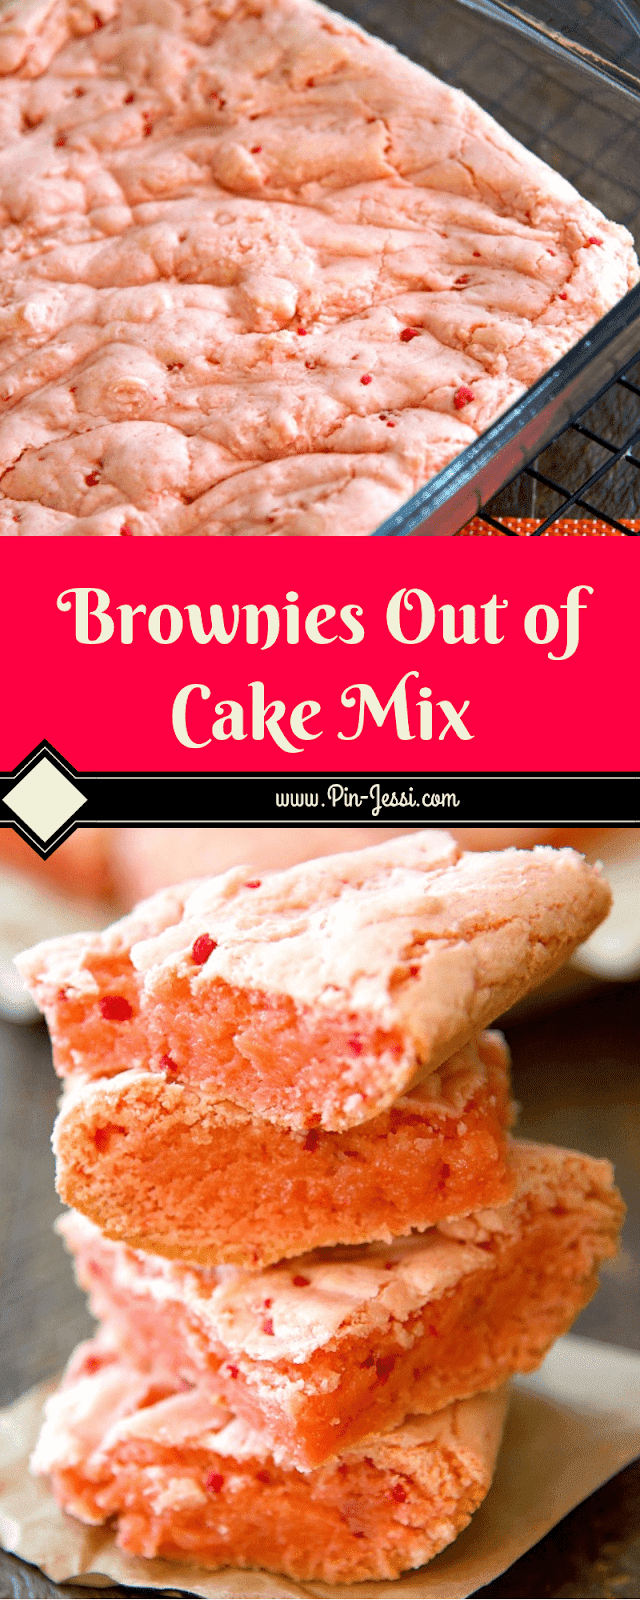 Brownies Out of Cake Mix Recipe -   12 cake Mix desserts ideas